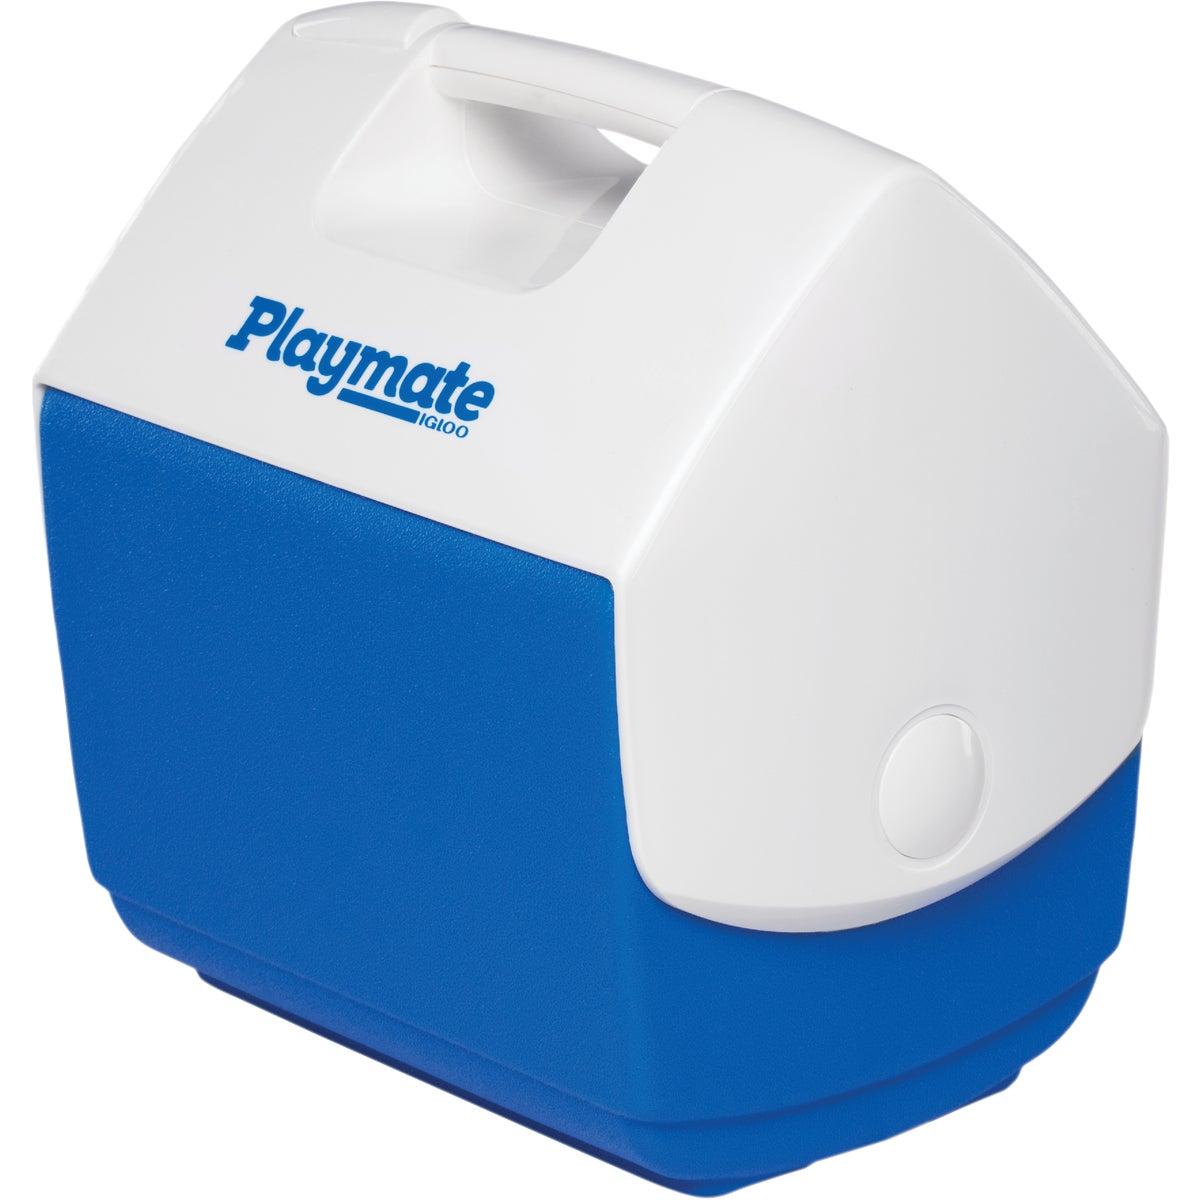 16QT PLAYMATE COOLER - 43364 by Igloo Corp